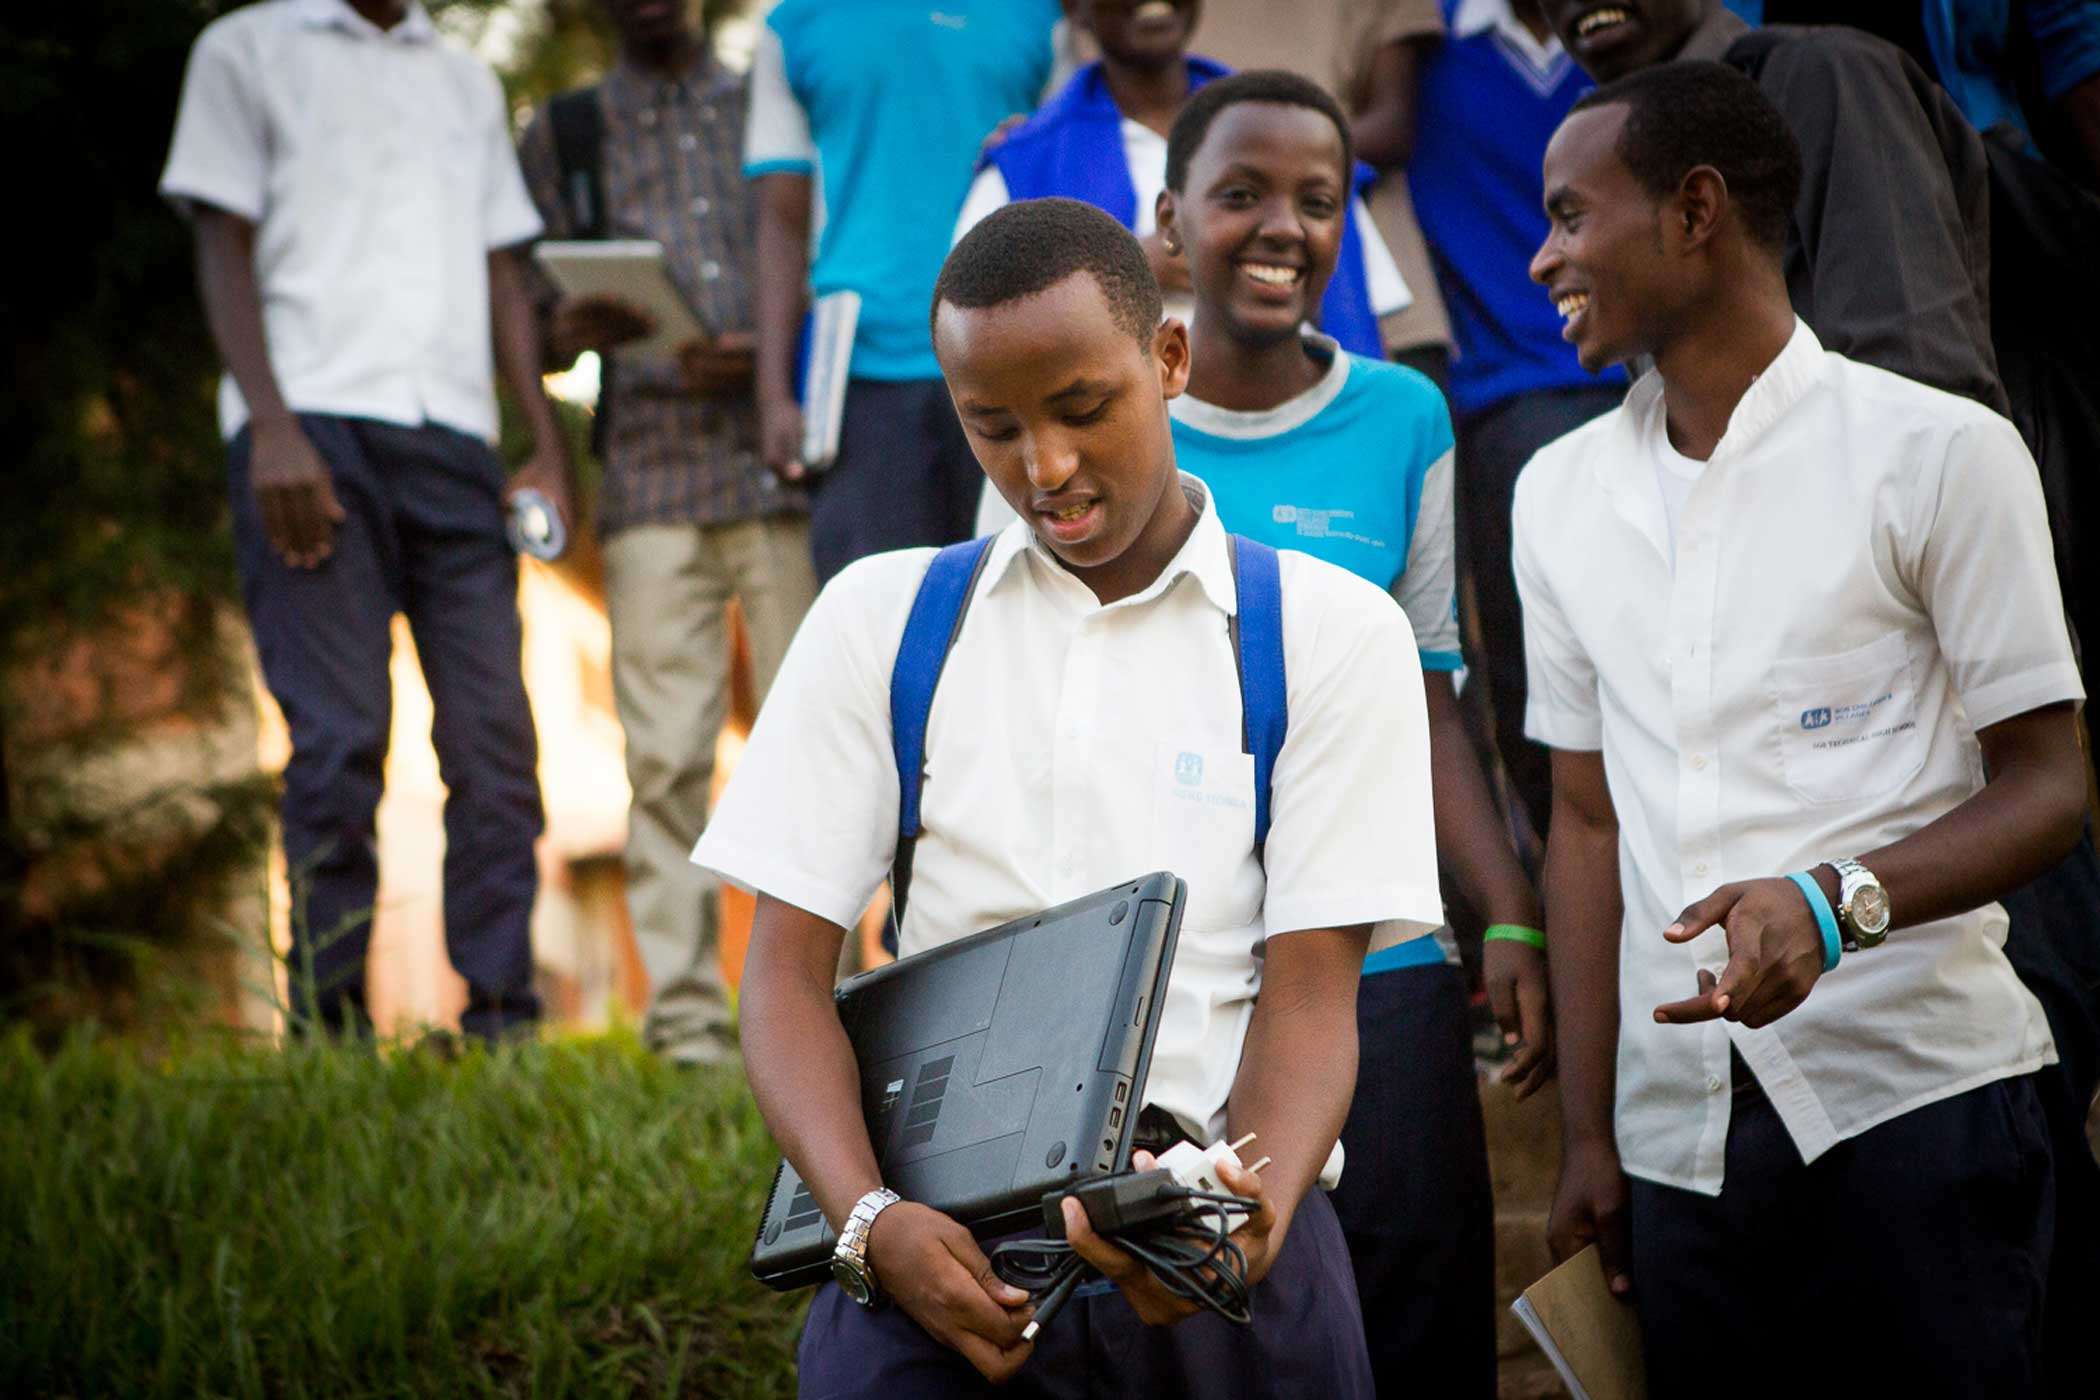 Elisée Pax Mfura, 18, and his classmates leave the after-school program run by HeHe Labs.